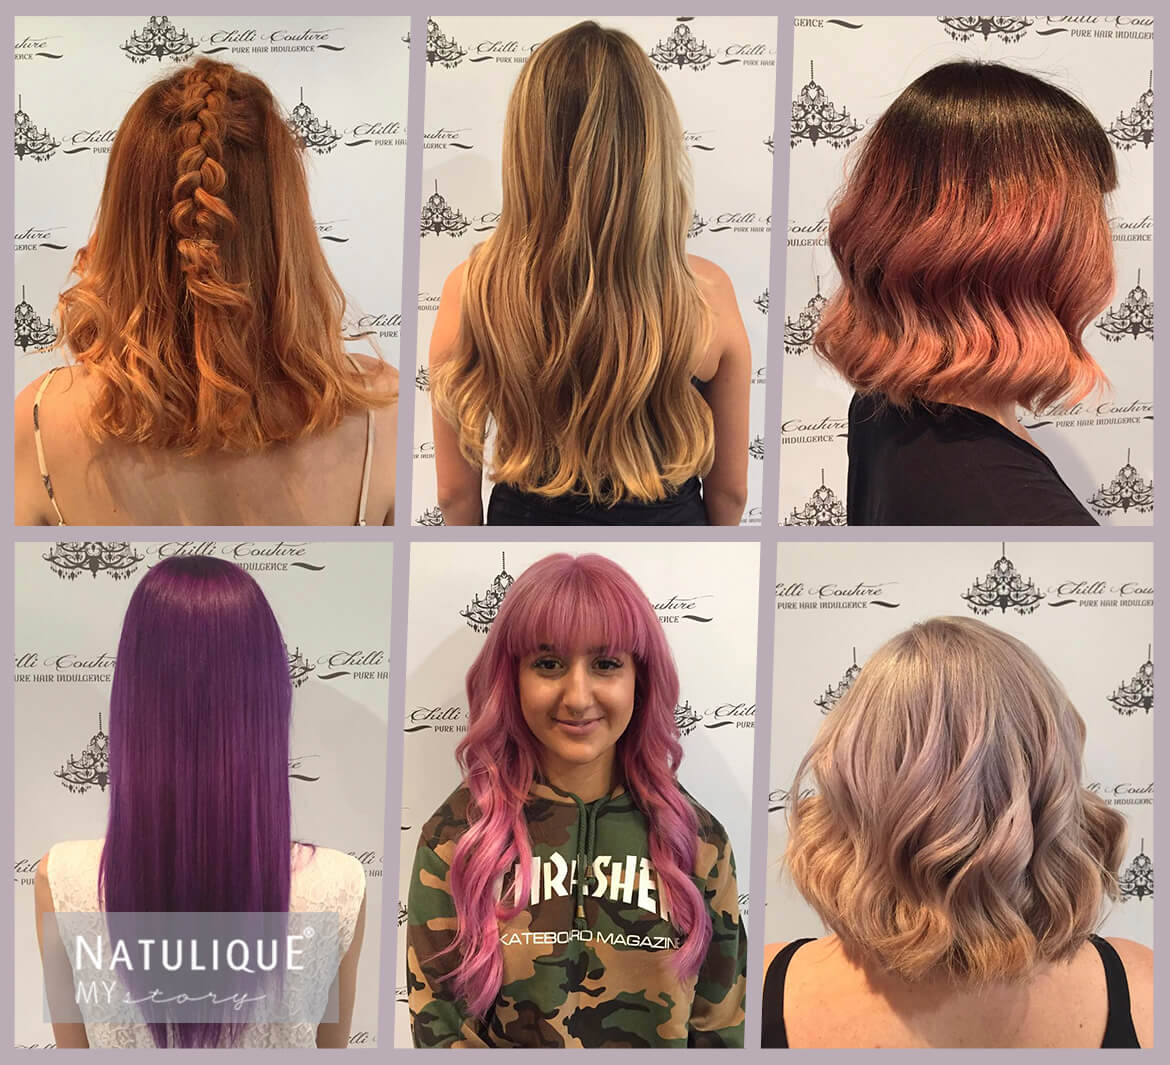 NATULIQUE Hair Colour reviews